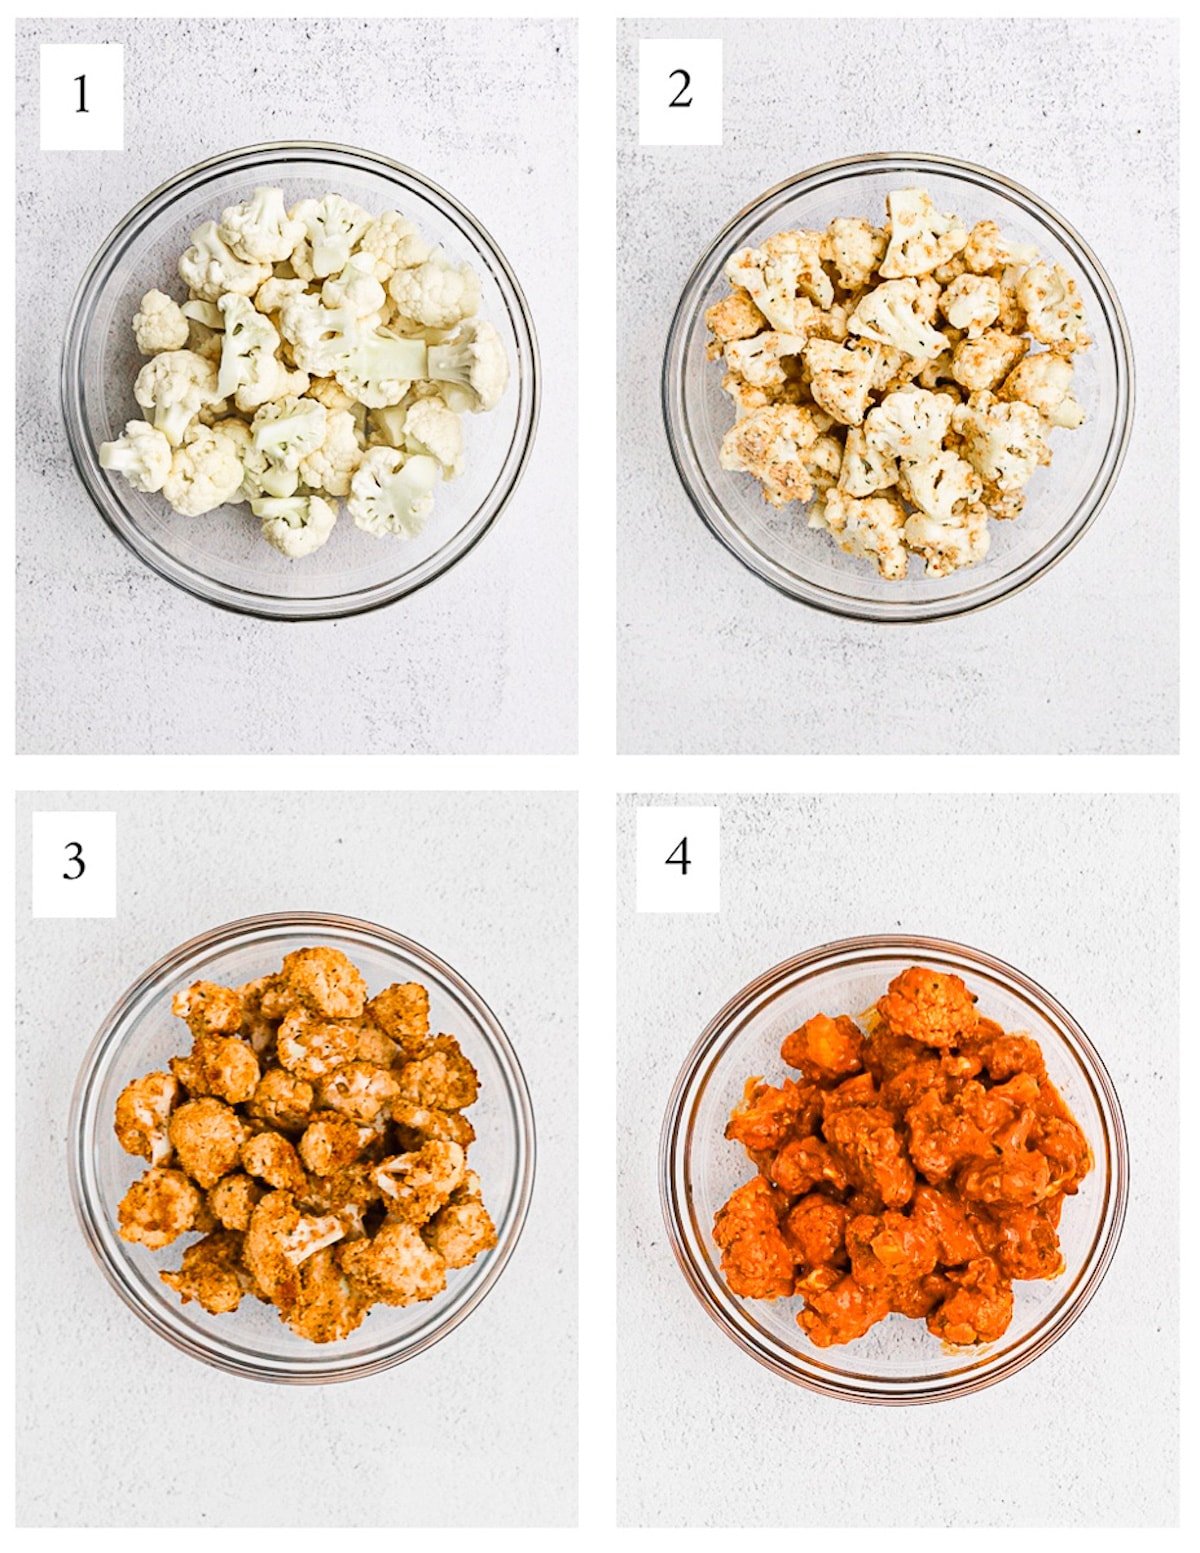 4 pictures of glass bowls, each holding cauliflower. 1: cauliflower florets 2. cauliflower florets covered in cornstarch 3. cauliflower cooked 4. cauliflower with buffalo sauce.